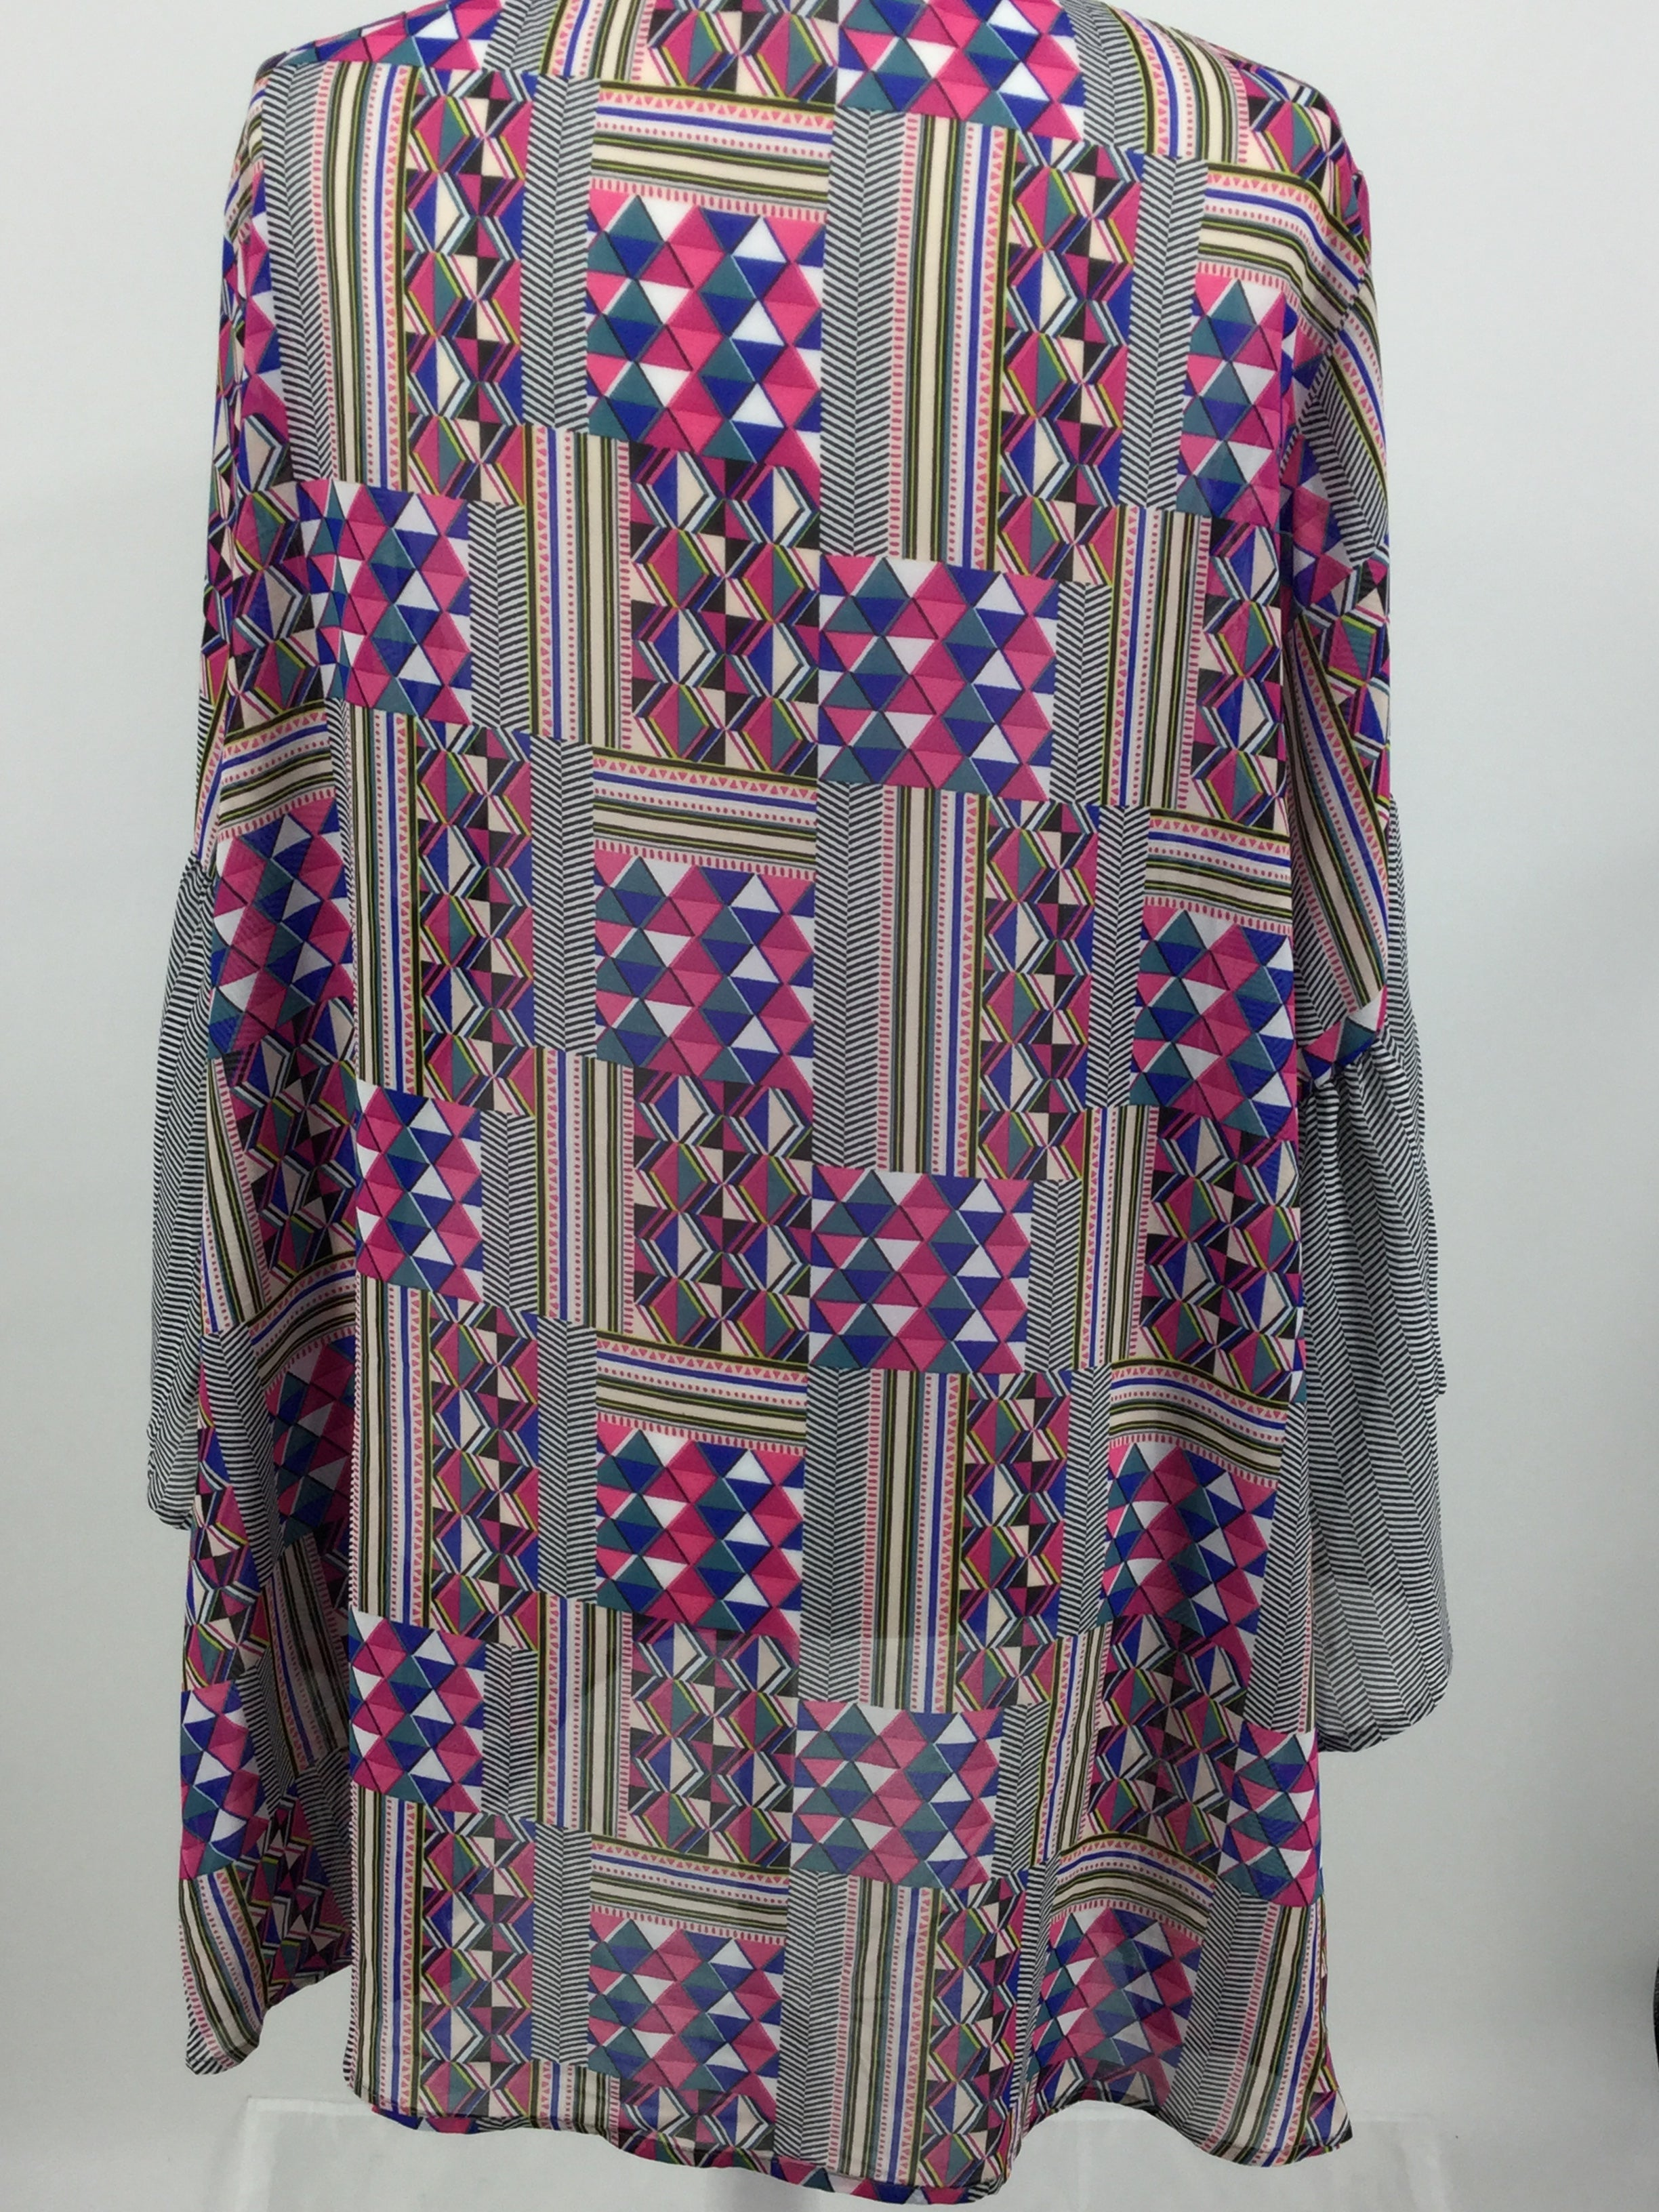 APPAREL,TOPS - MULTIPLE COLORS